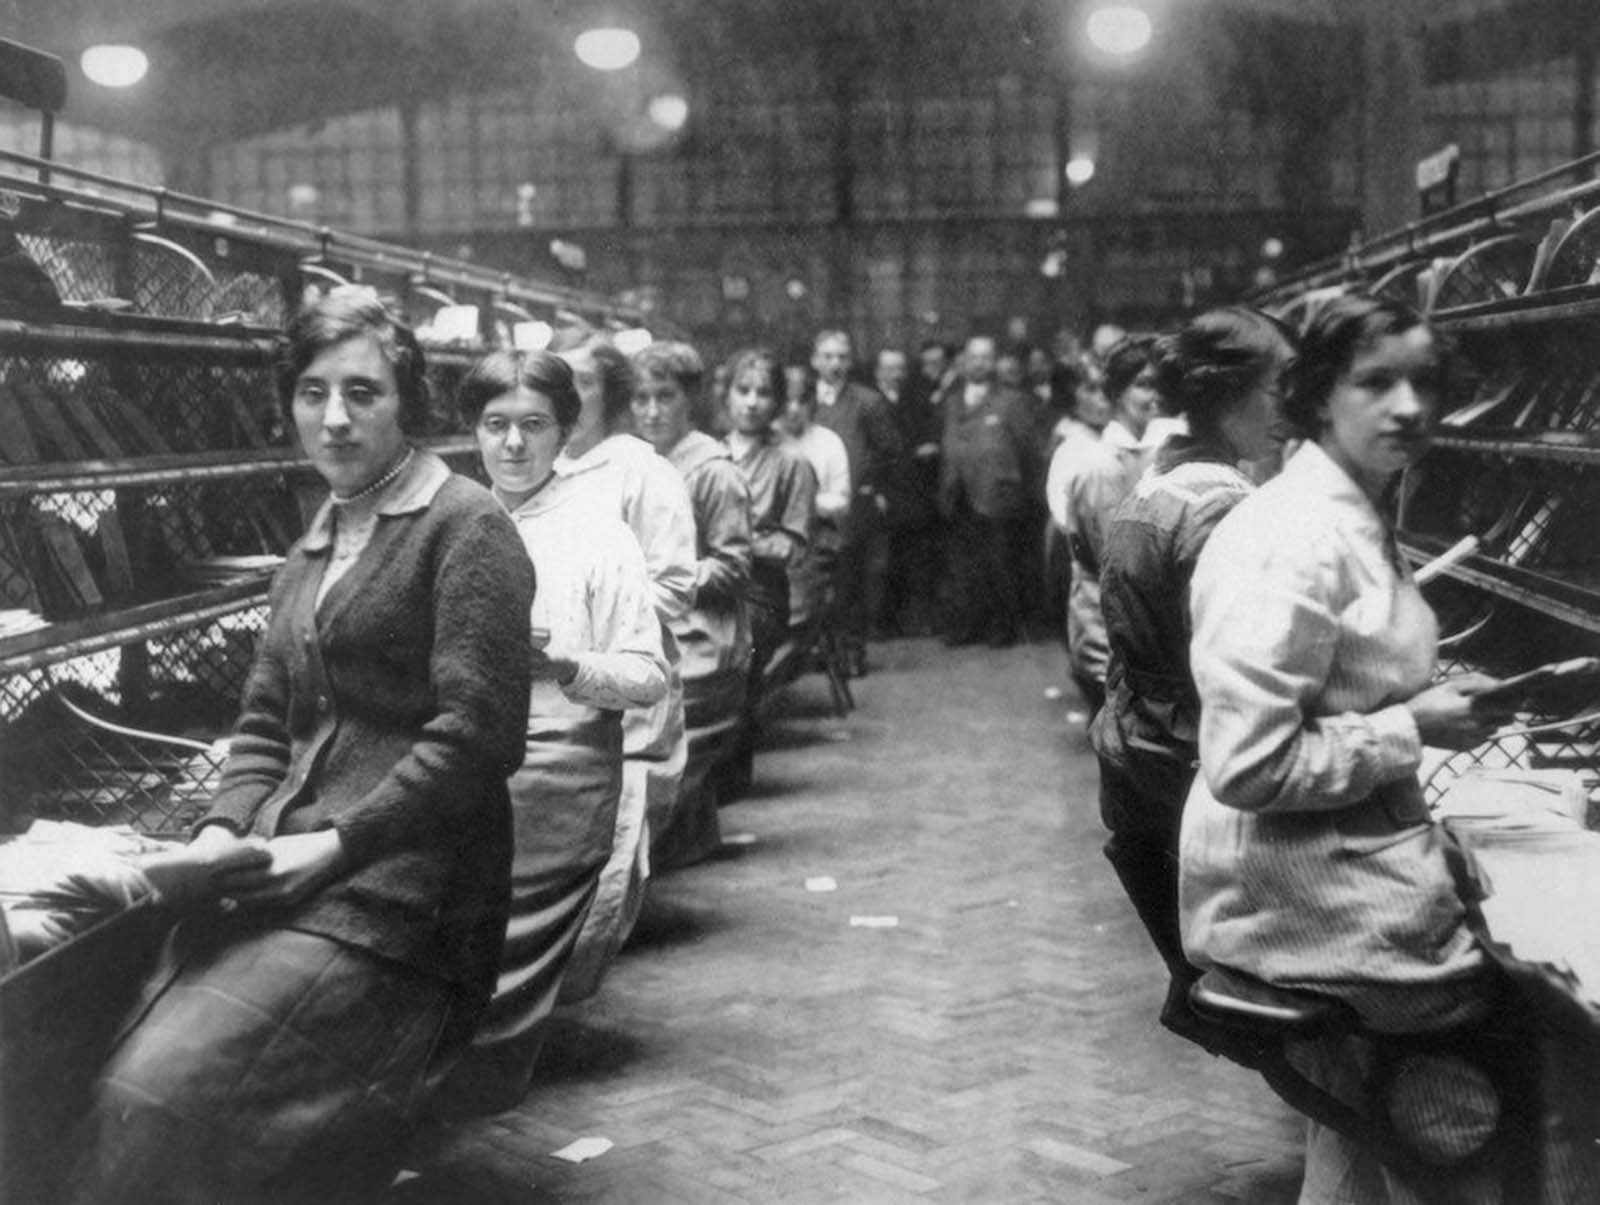 Women sorting mail at the post office during the Christmas rush in England. The women wear a range of blouses, and the woman front-left wears a cardigan and a set of pearls. Their hair is again worn loosely tied up. The woman front-right wears a striped dress, as we're starting to see more patterns. 1920.